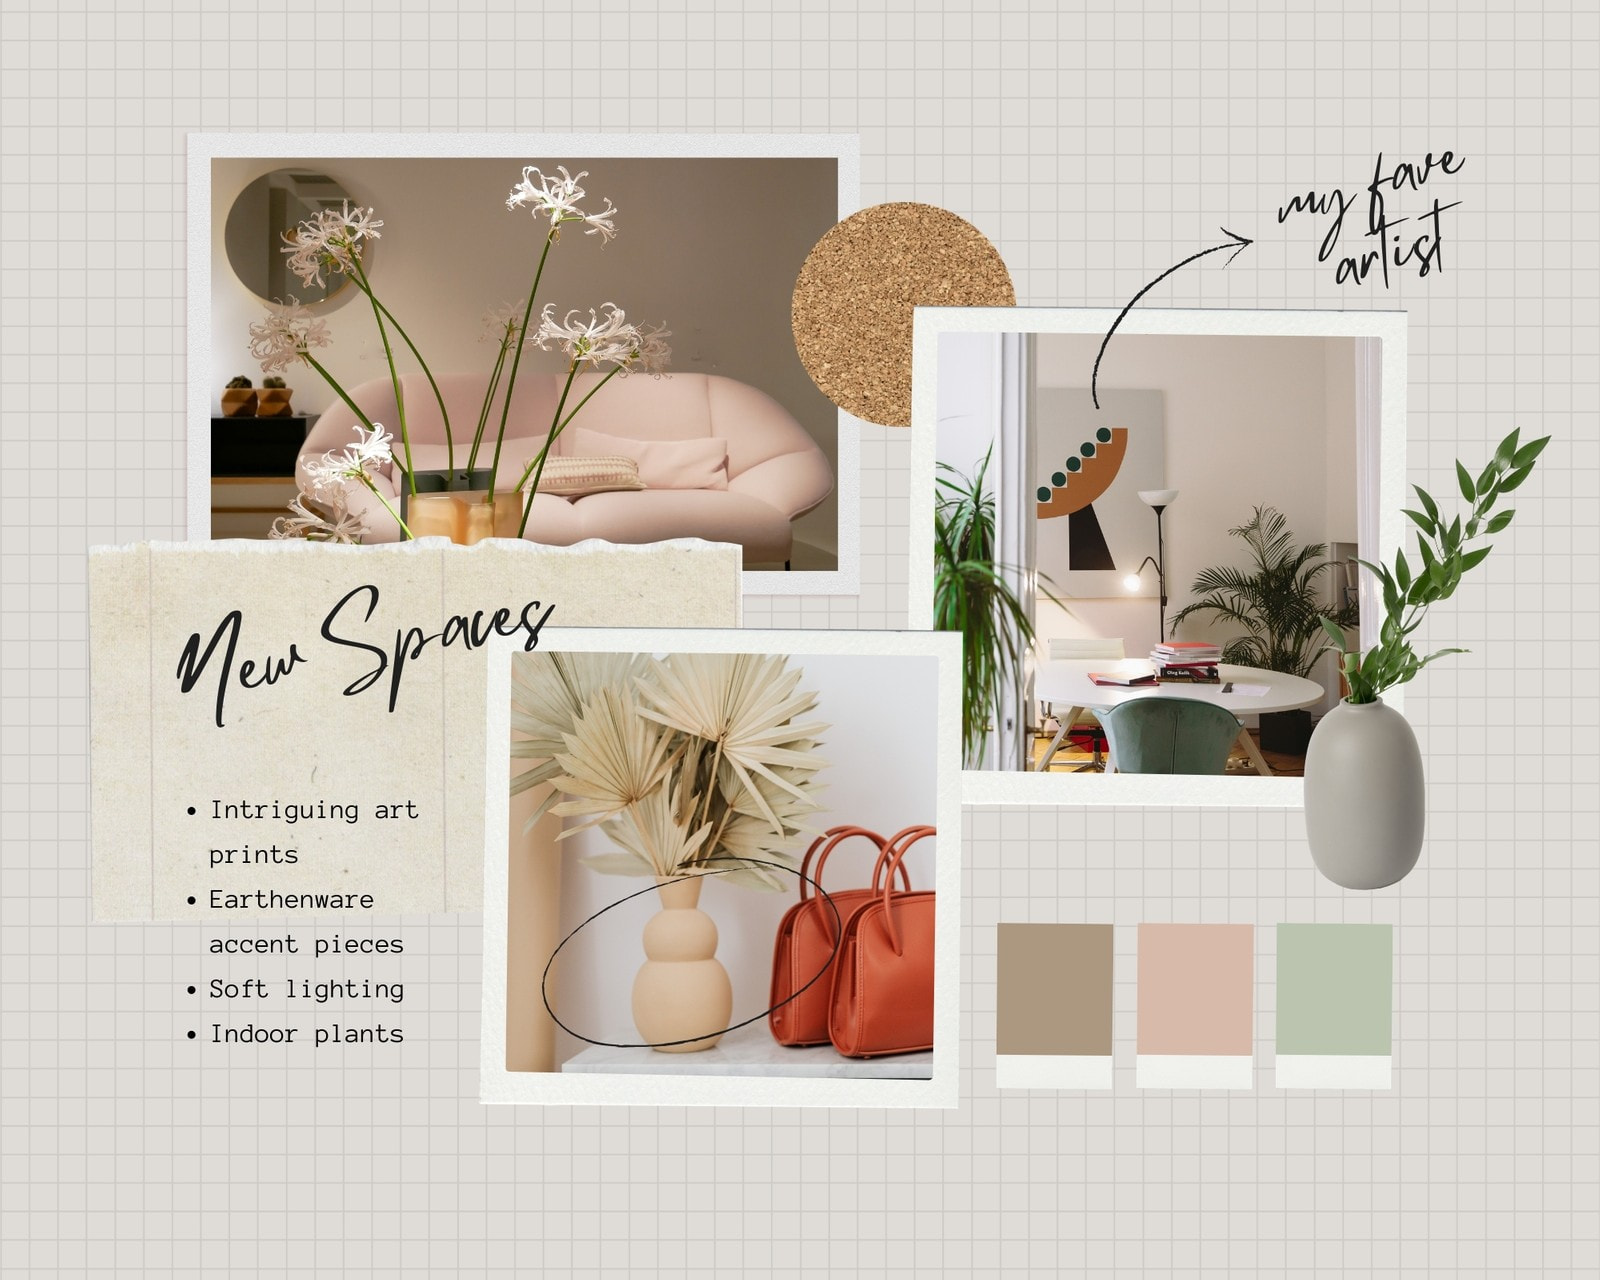 Brown and Green DIY Collage Interior Design Moodboard Photo Collage